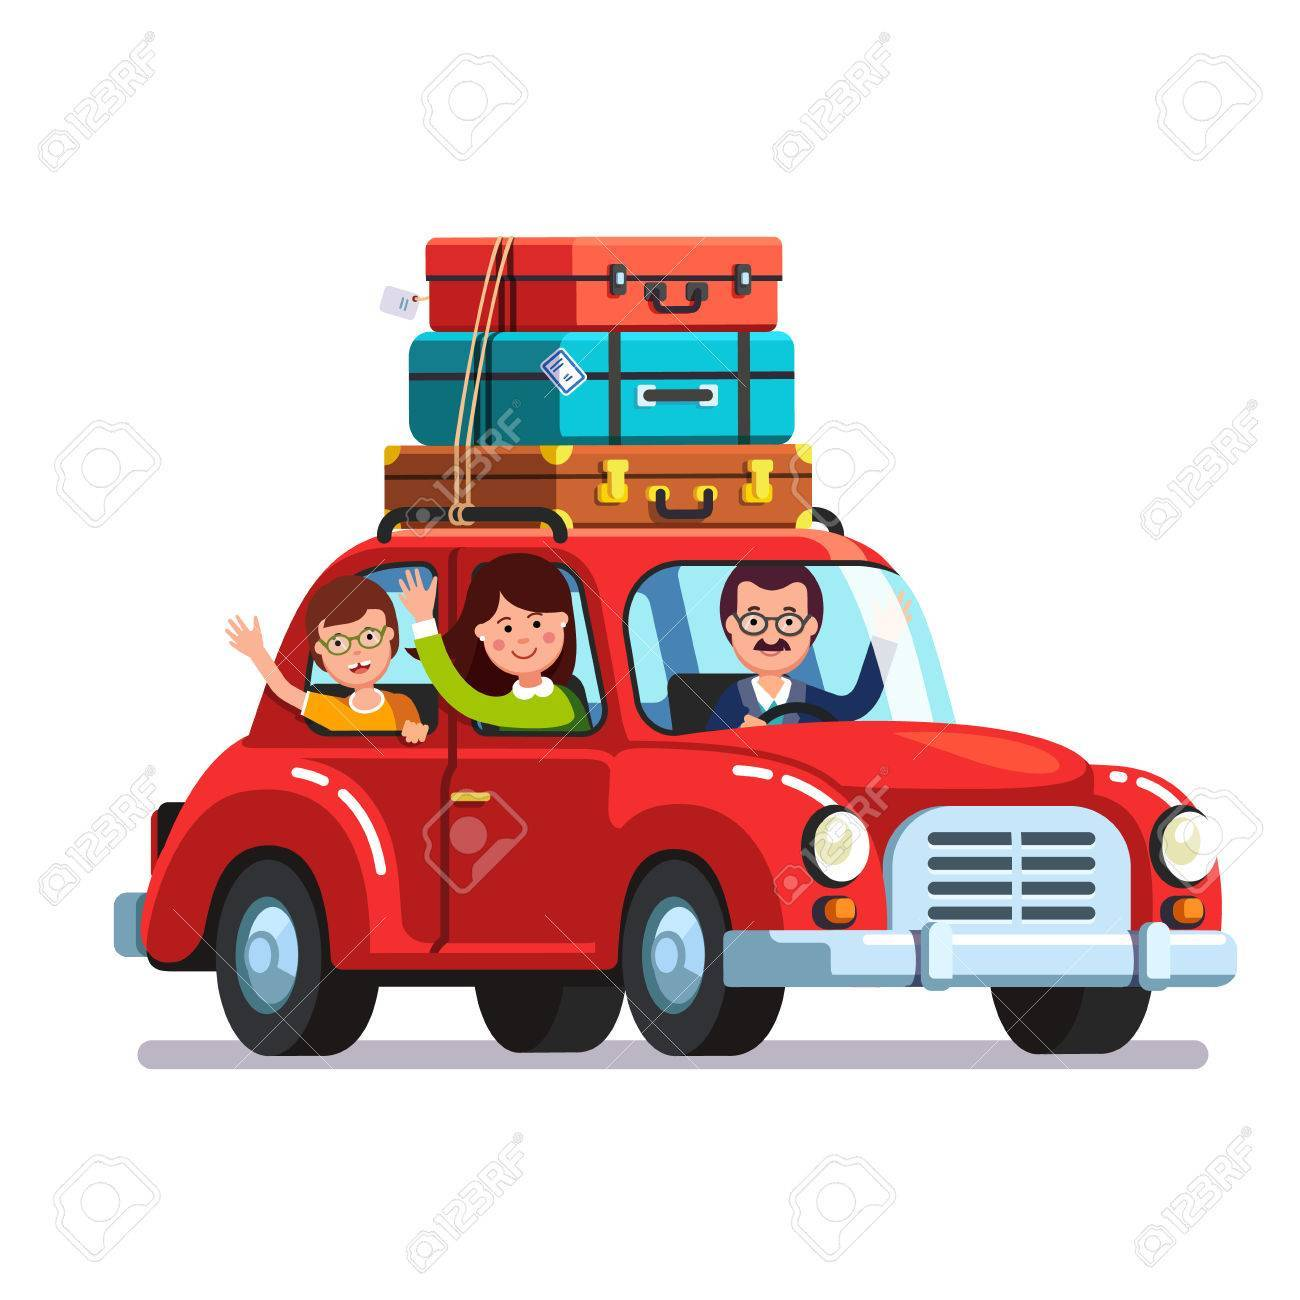 Car roof clipart clip royalty free download Family traveling by car with luggage bags on roof » Clipart Portal clip royalty free download